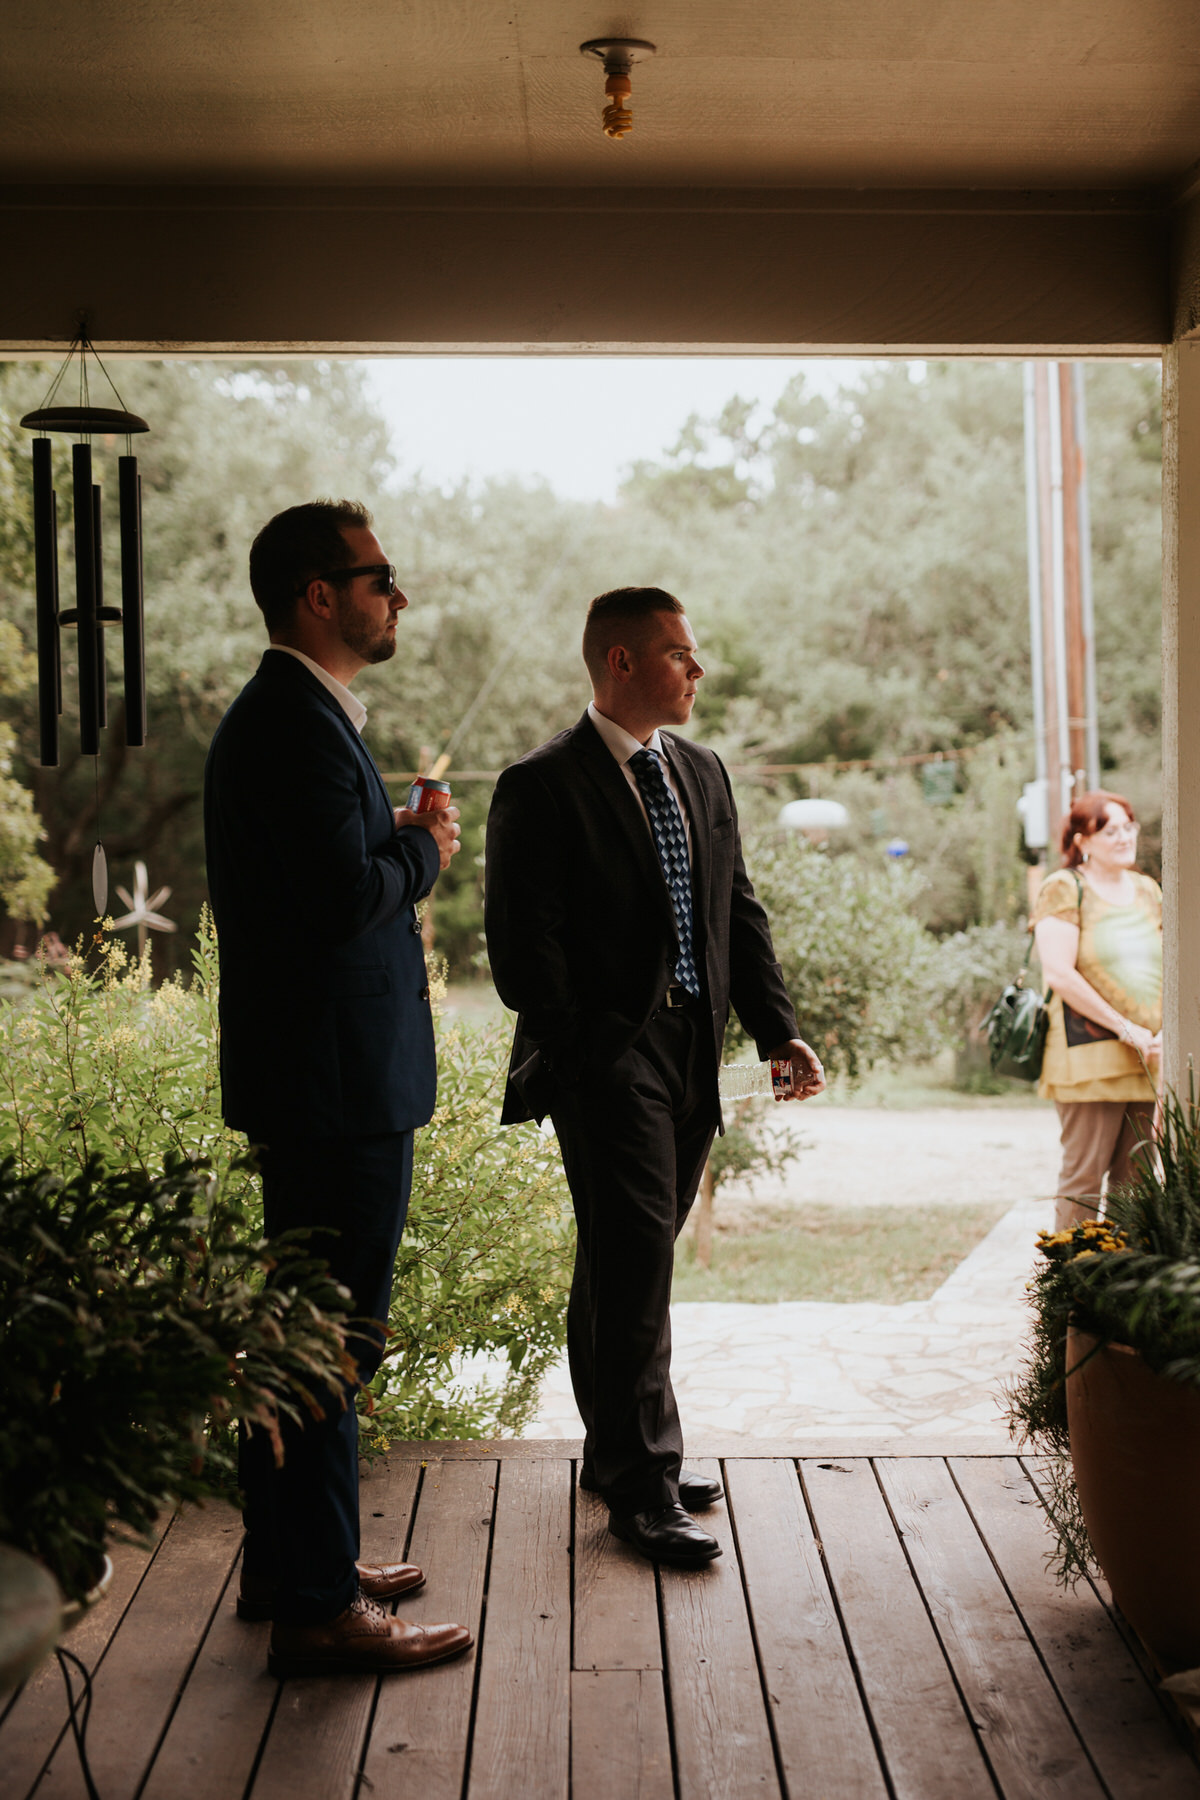 Austin Wedding Venue, Texas Wedding Photographer, Same Sex Wedding Photographer, Same Sex Wedding, LGBTQ Wedding Photographer, LGBTQ Wedding Photography, Austin Wedding Photographer, Austin Wedding Photography